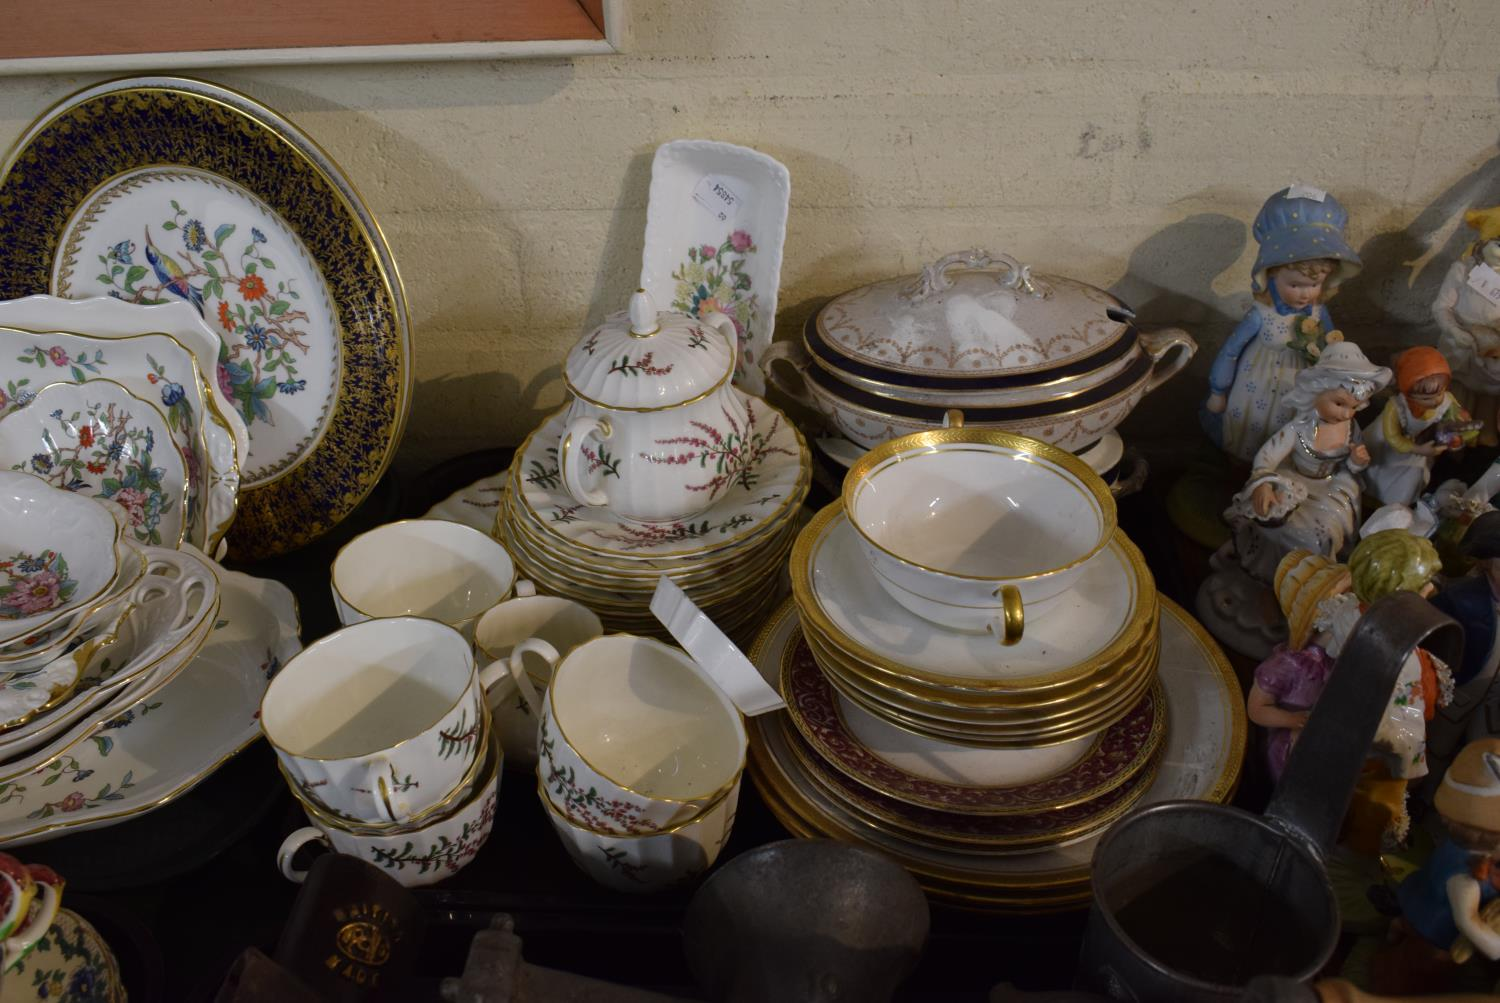 Lot 204 - A Tray Containing Royal Worcester Dunrobin Teawares, Coalport Pen Tray, Aynsley Soup Bowls and